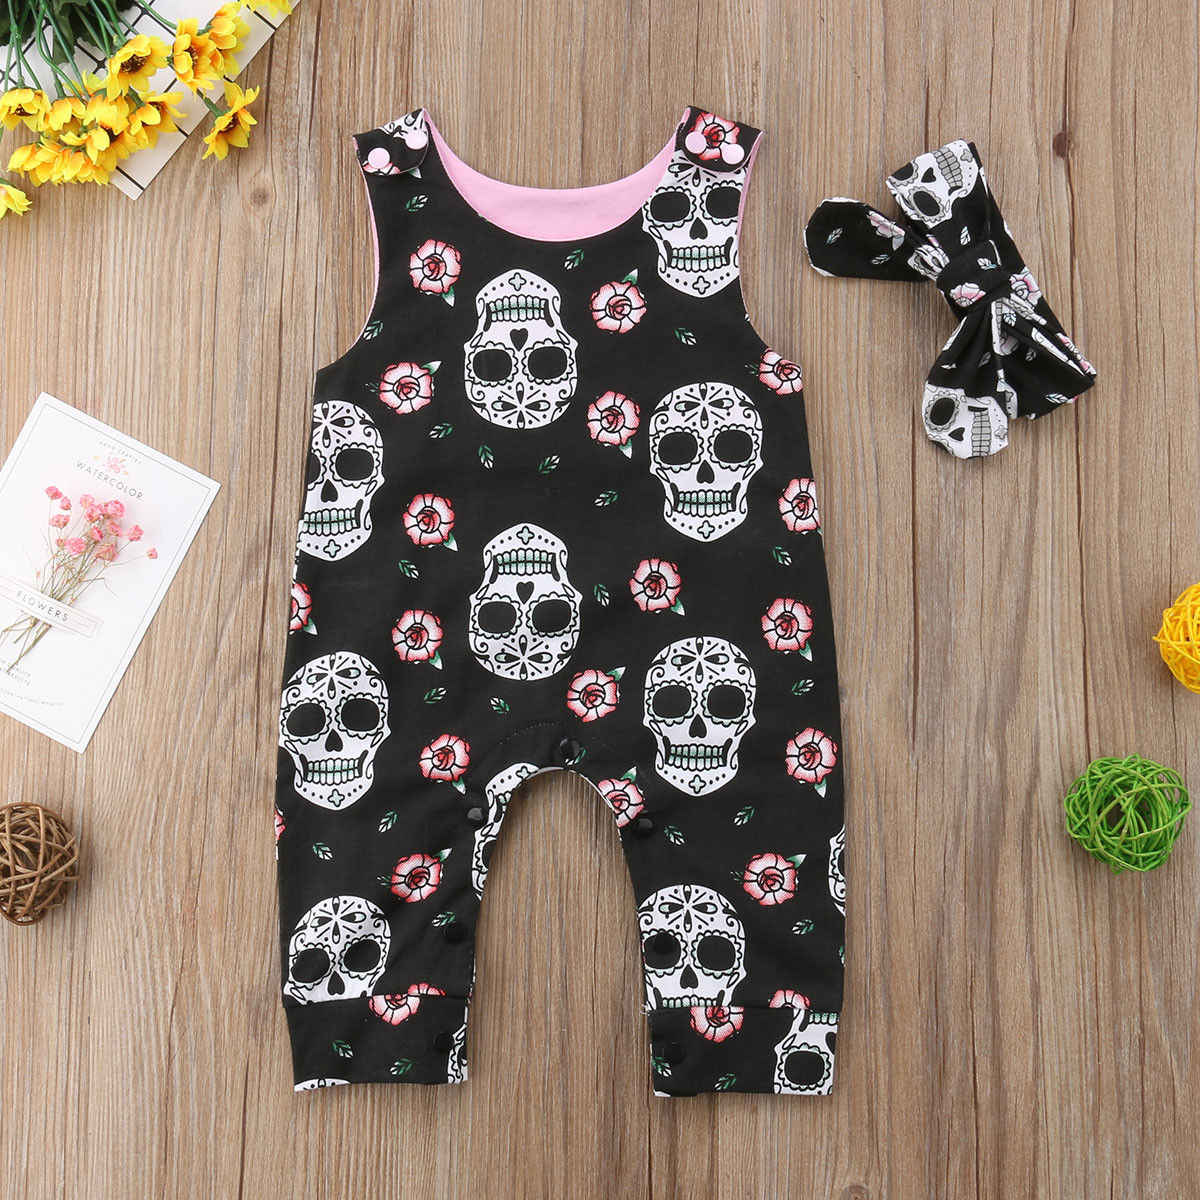 819b0fa62037 ... Halloween Newborn Baby Rompers Boys Girls Skull Flower Romper Jumpsuit  2PCS Outfit Costume Holiday Cute Baby ...